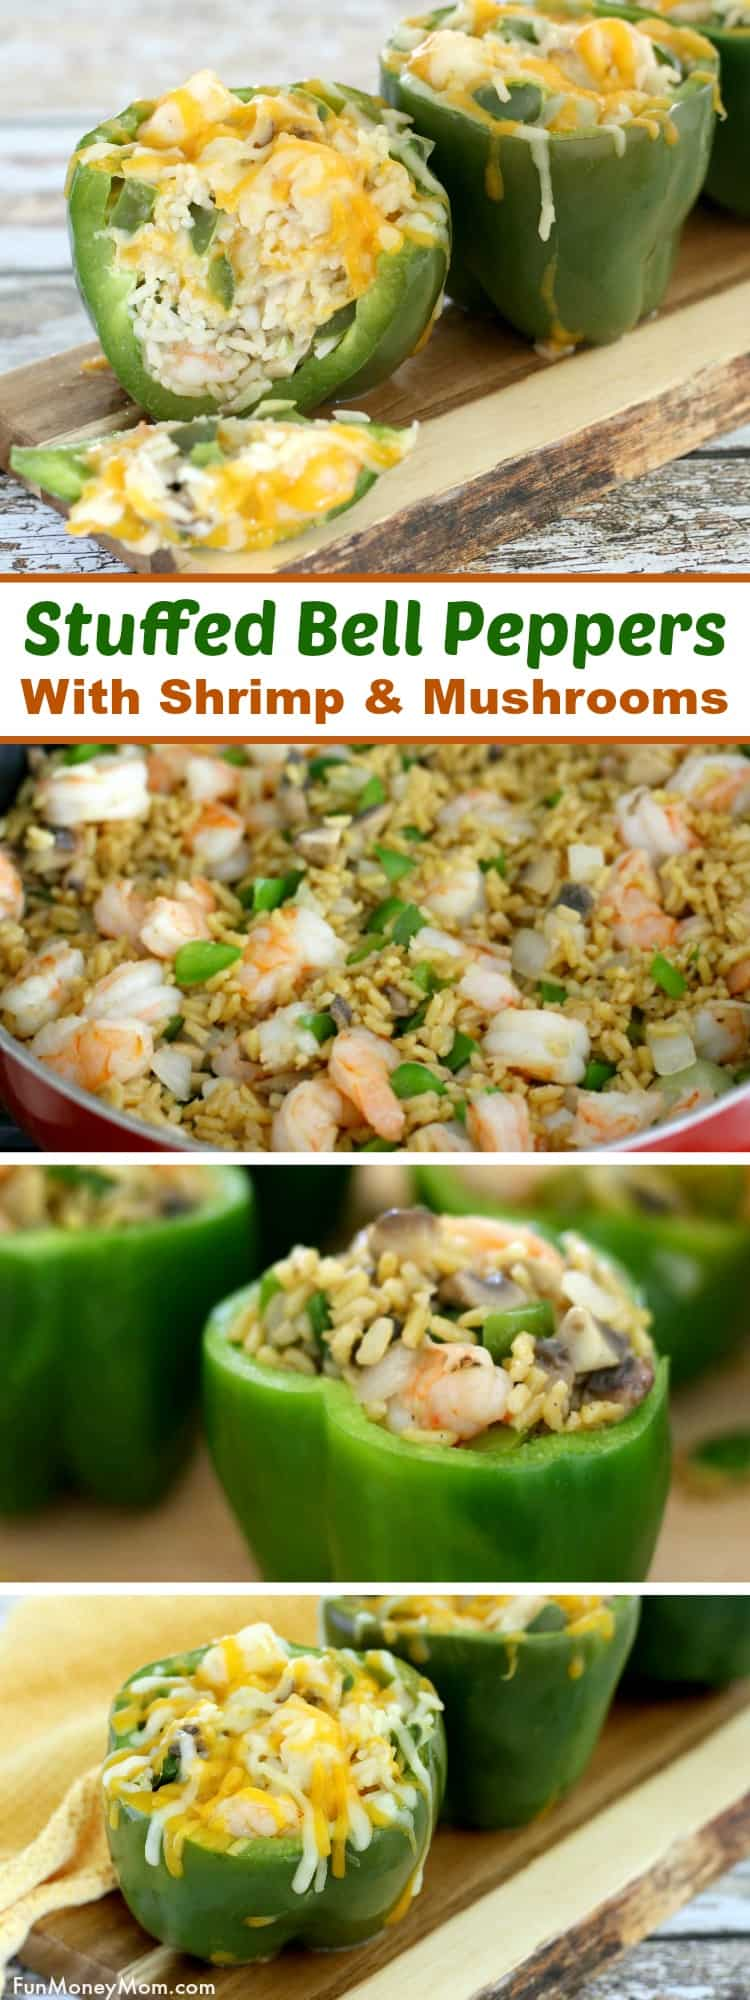 Shrimp Stuffed Peppers - These shrimp stuffed bell peppers with mushrooms and rice make an easy dinner recipe the whole family will love! #stuffedpeppers #shrimpstuffedpeppers #stuffedbellpeppers #easyrecipe #ad